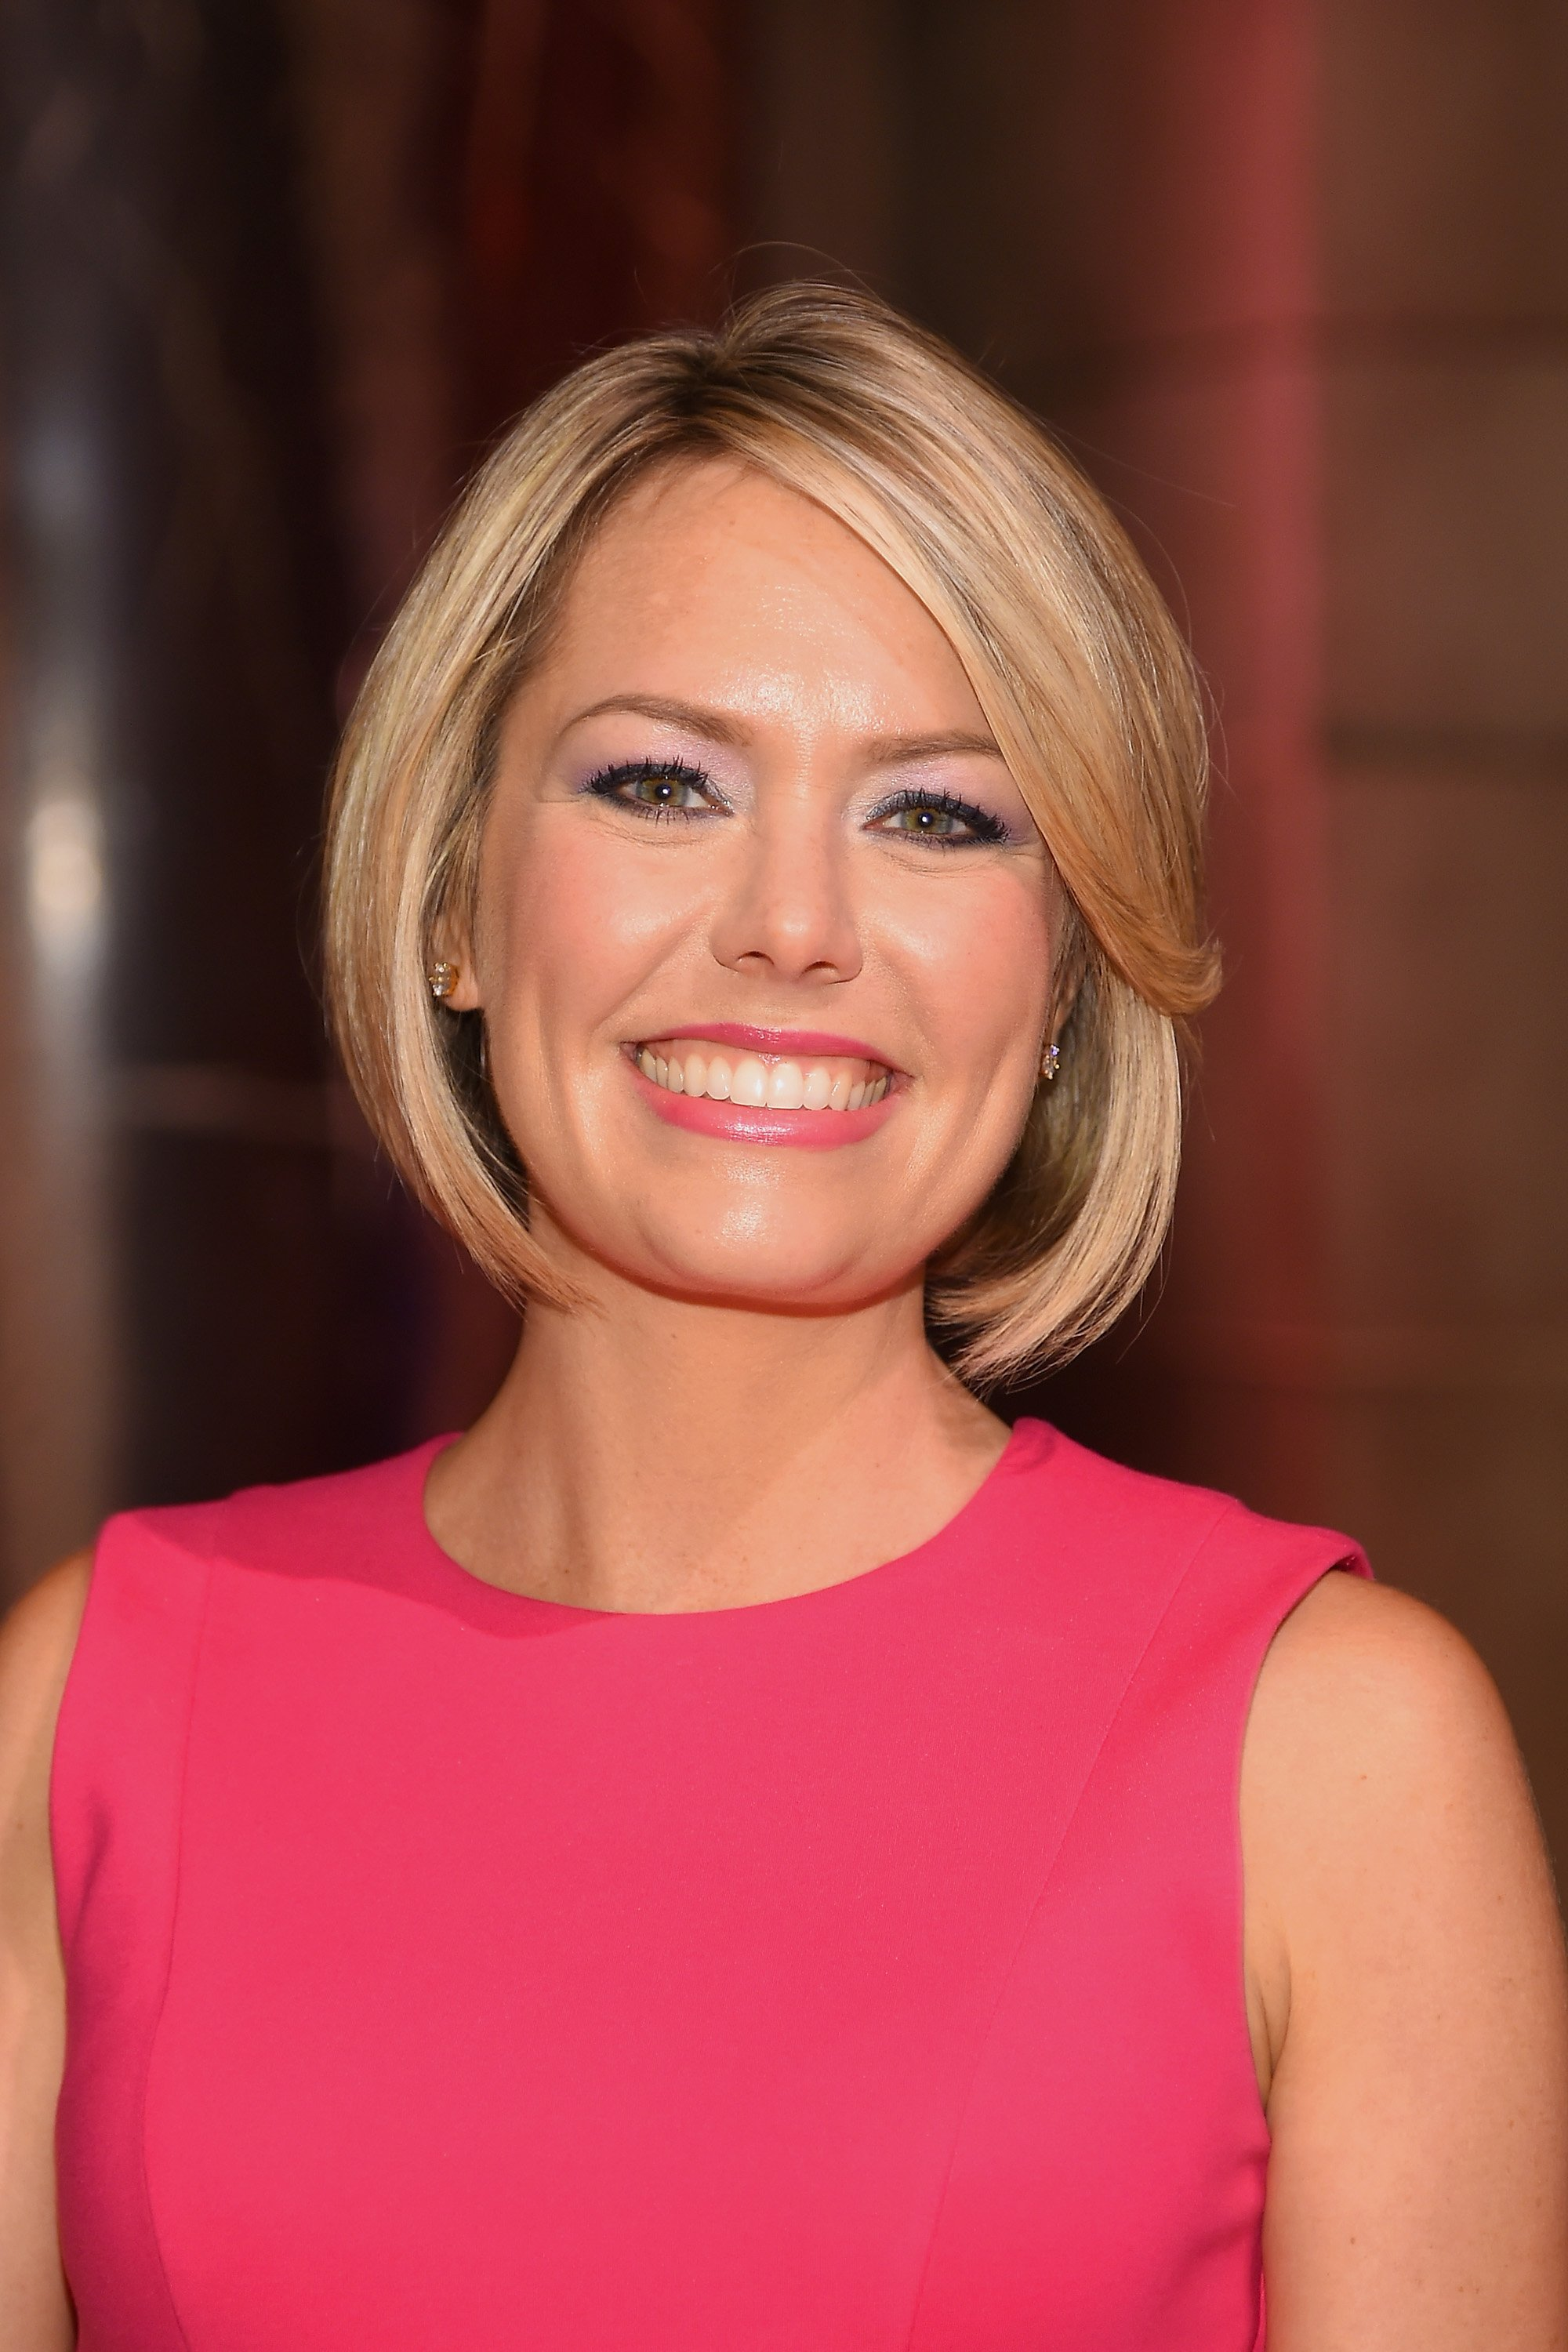 Meteorologist Dylan Dreyer attends the 42nd Annual Gracie Awards Luncheon at Cipriani 42nd Street on June 27, 2017 in New York City   Photo: Getty Images